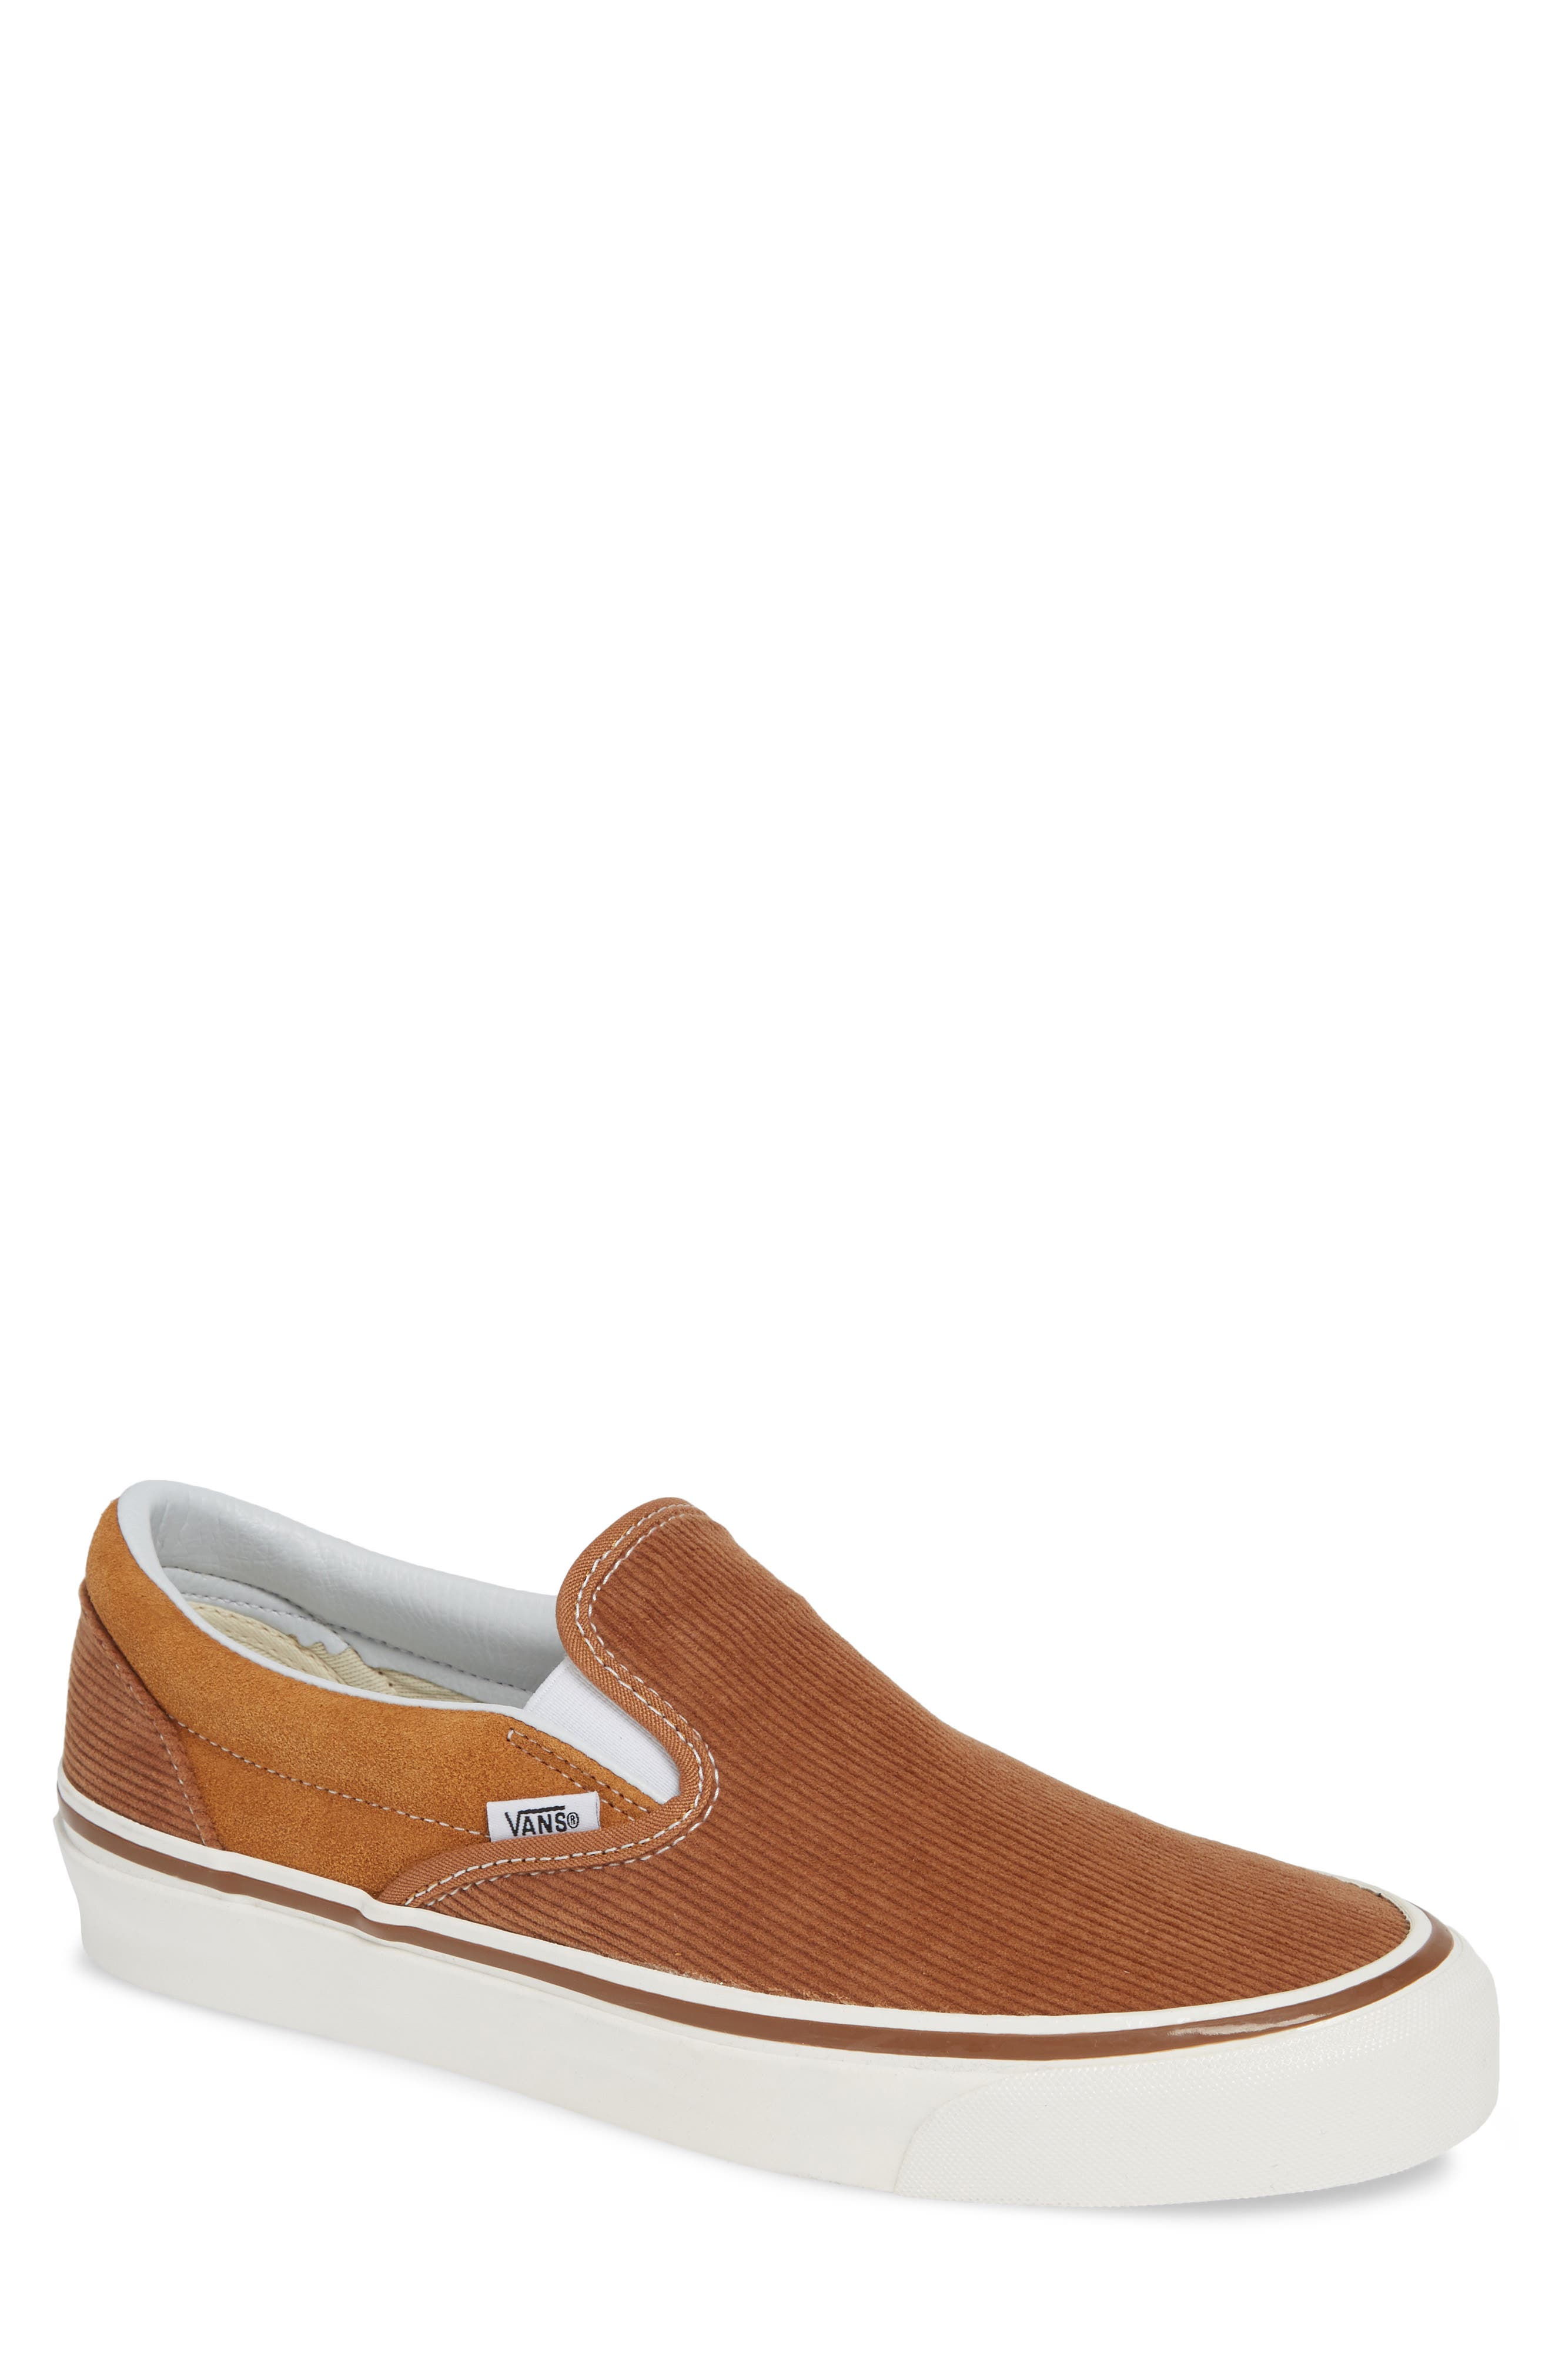 Classic 98 DX Slip-On Sneaker, Main, color, BROWN/ CORDUROY